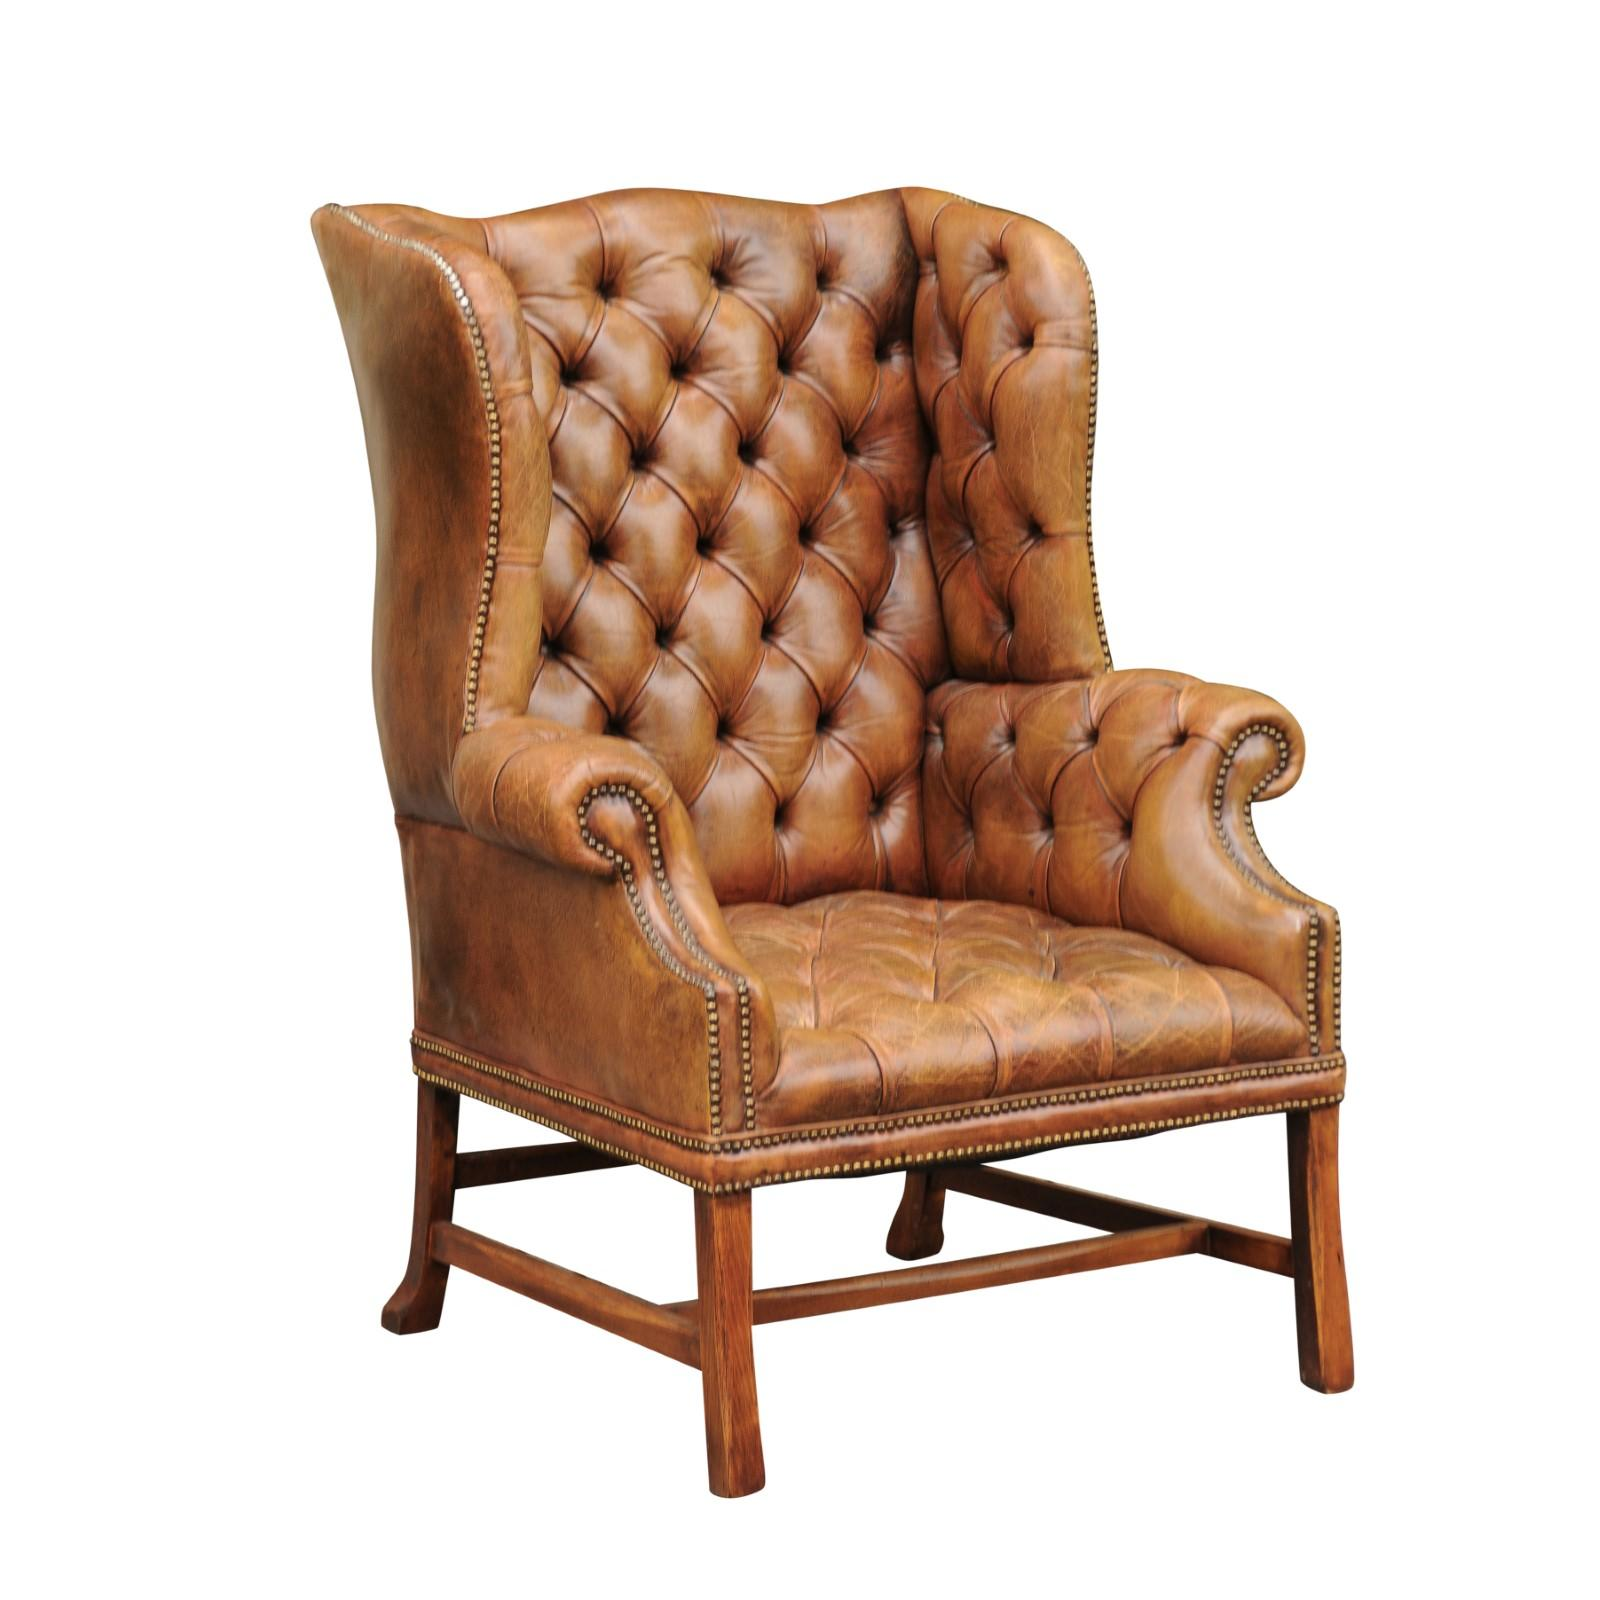 leather wing chairs chair design scandinavian english 1900s button tufted wingback with out scrolling arms for sale